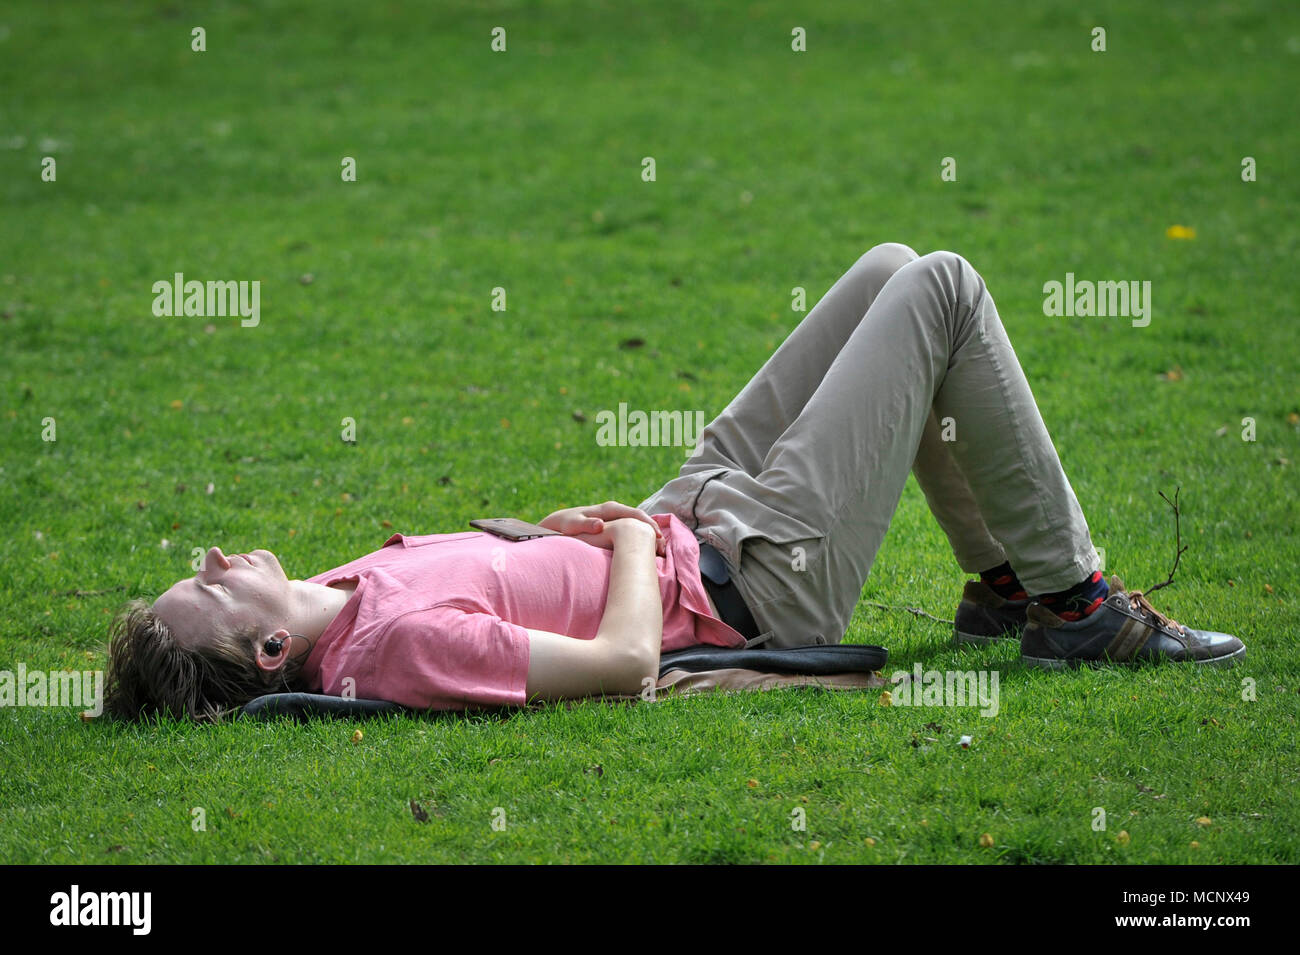 London, UK.  17 April 2018.  UK Weather: A man snoozes during warm weather in St. James's Park.   Much warmer temperatures of 25C are forecast to arrive in the UK in the next few days.  Credit: Stephen Chung / Alamy Live News - Stock Image